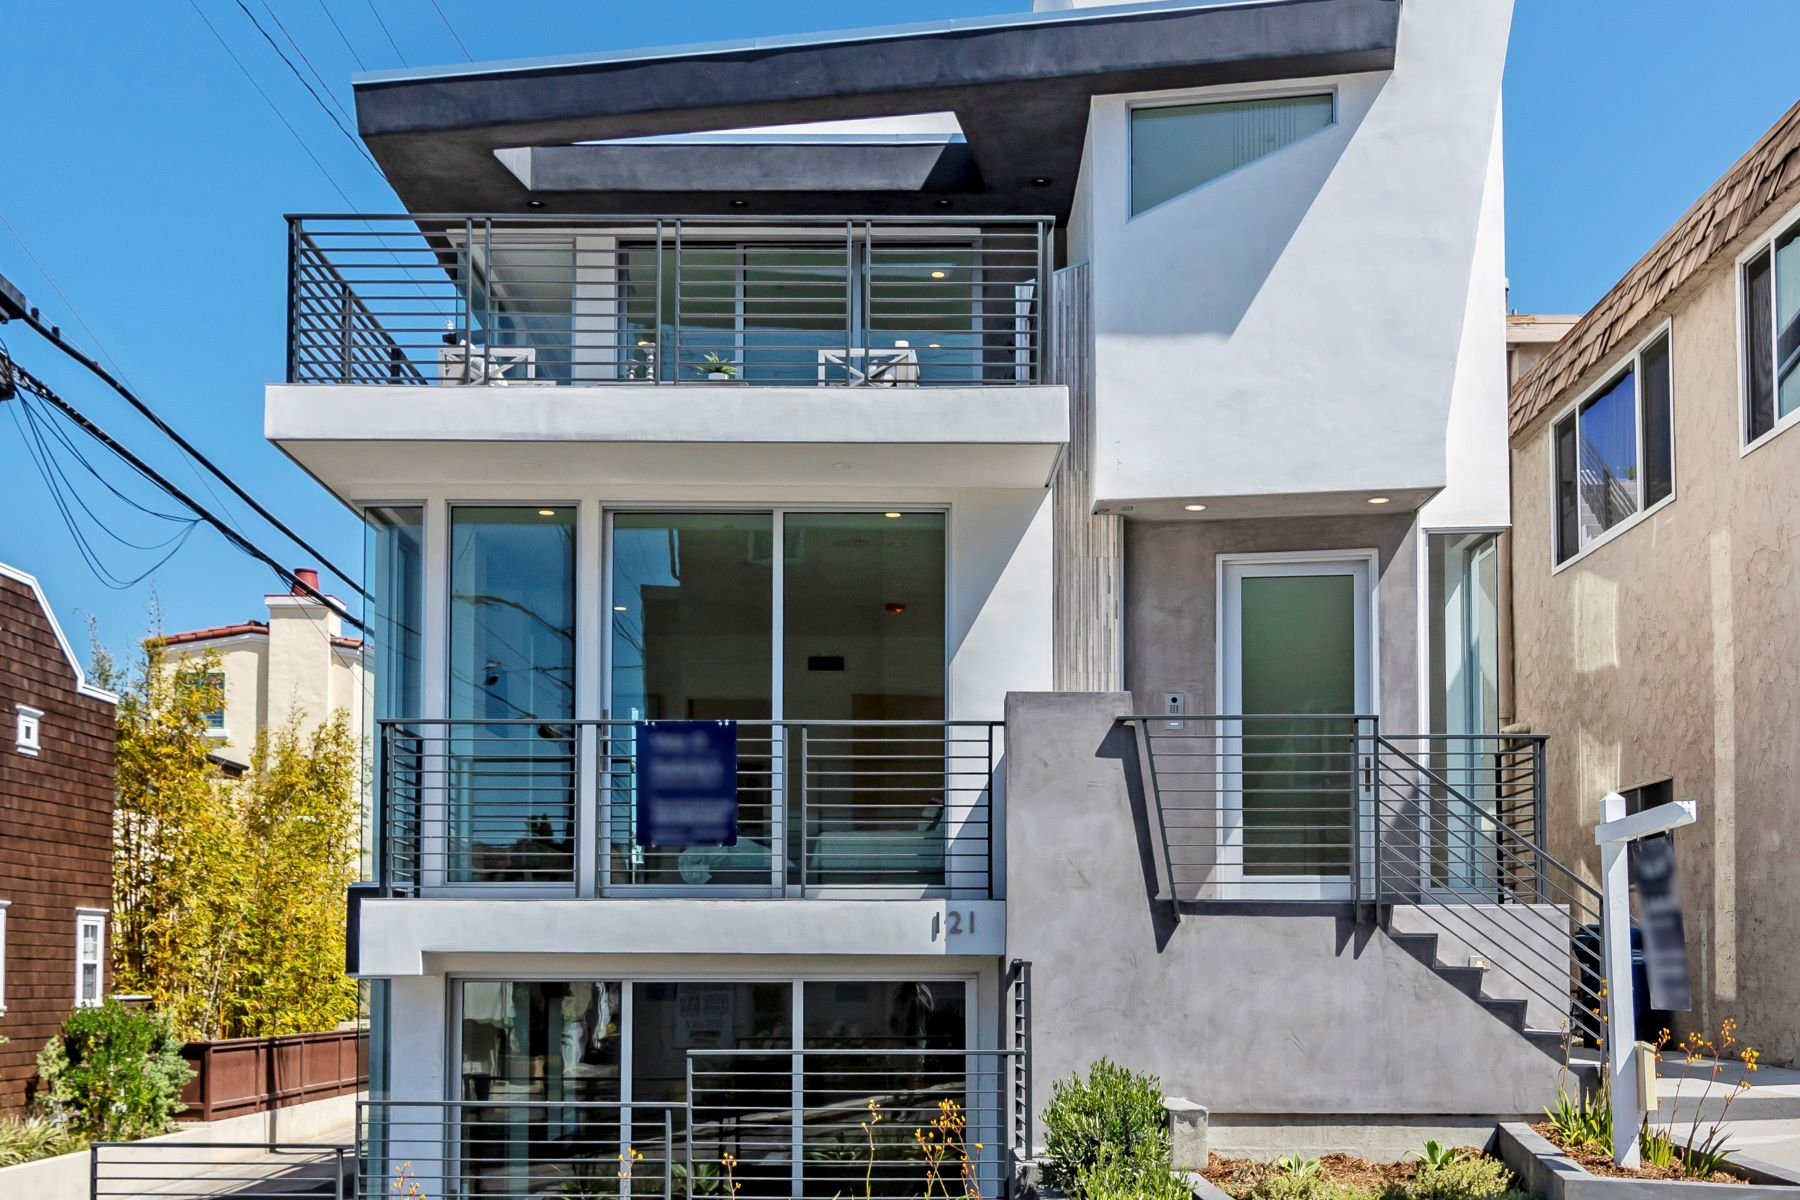 Single Family Homes for Sale at 121 16th Street, Hermosa Beach, CA 90254 121 16th Street Hermosa Beach, California 90254 United States